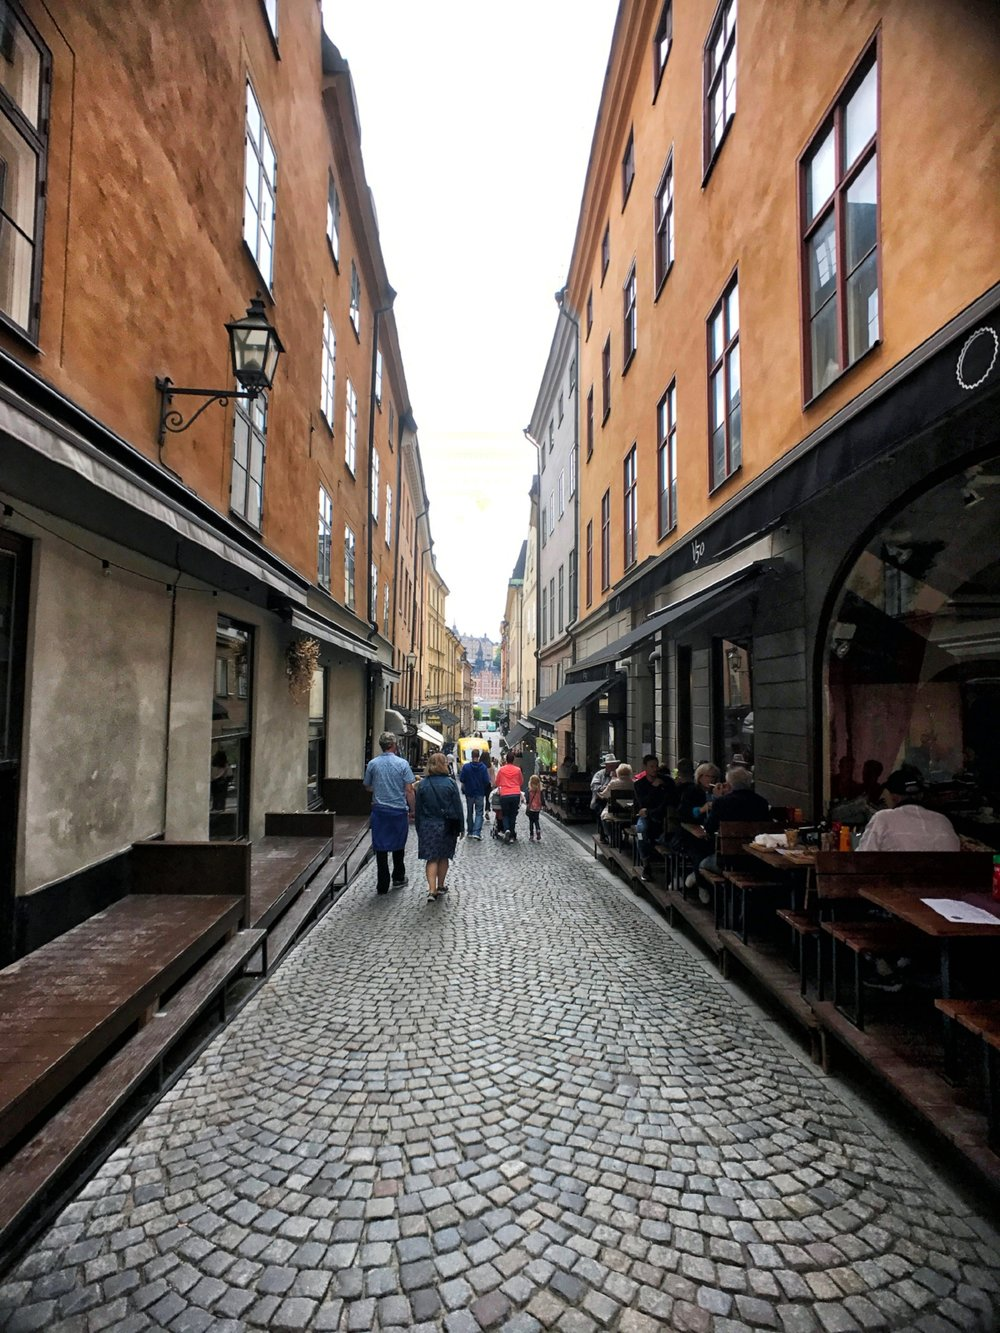 A side street in Gamla Stan